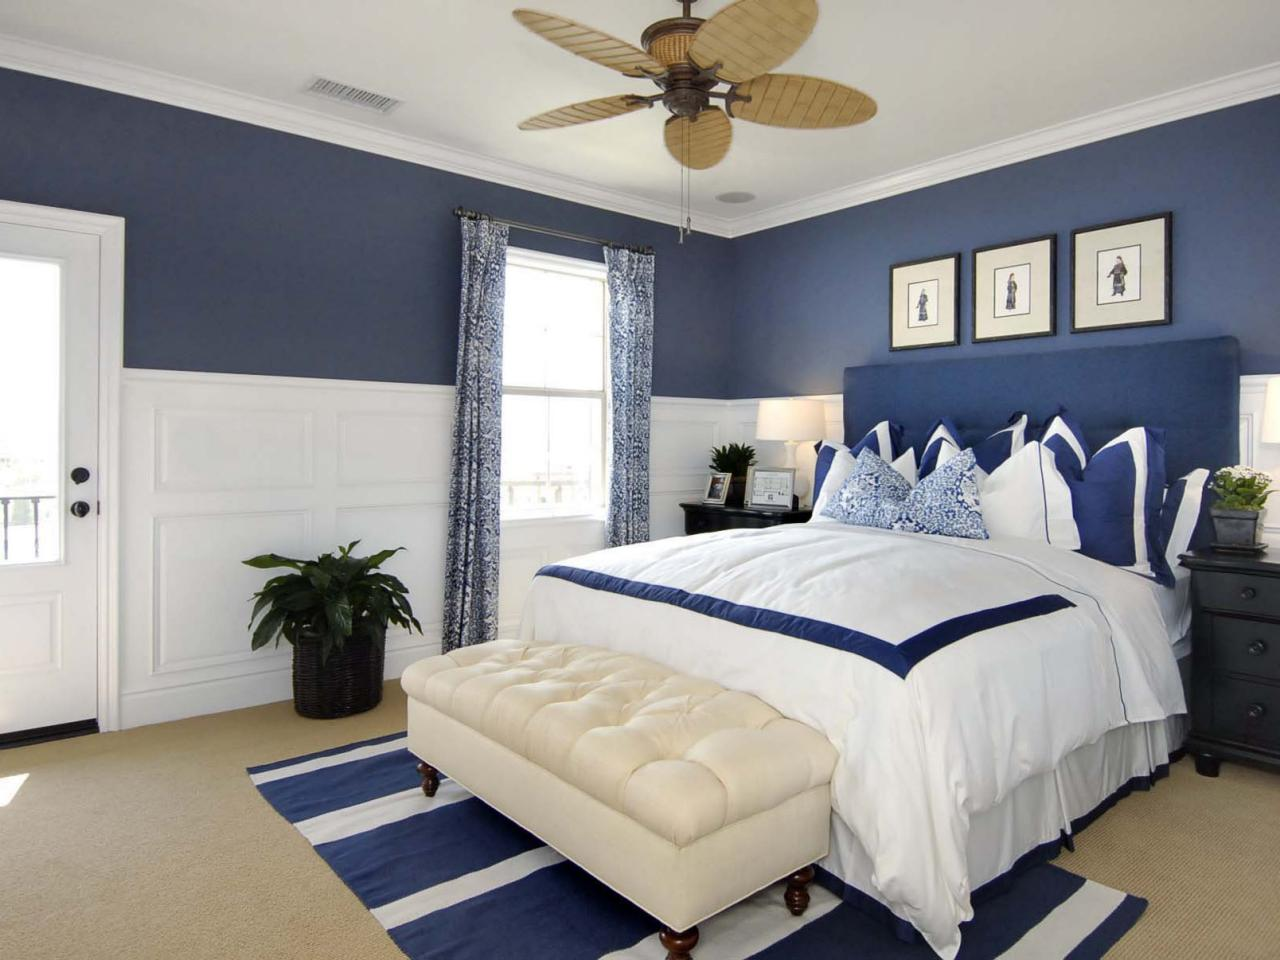 Install A Fan In Guest Room 45 Ideas For The Ultimate